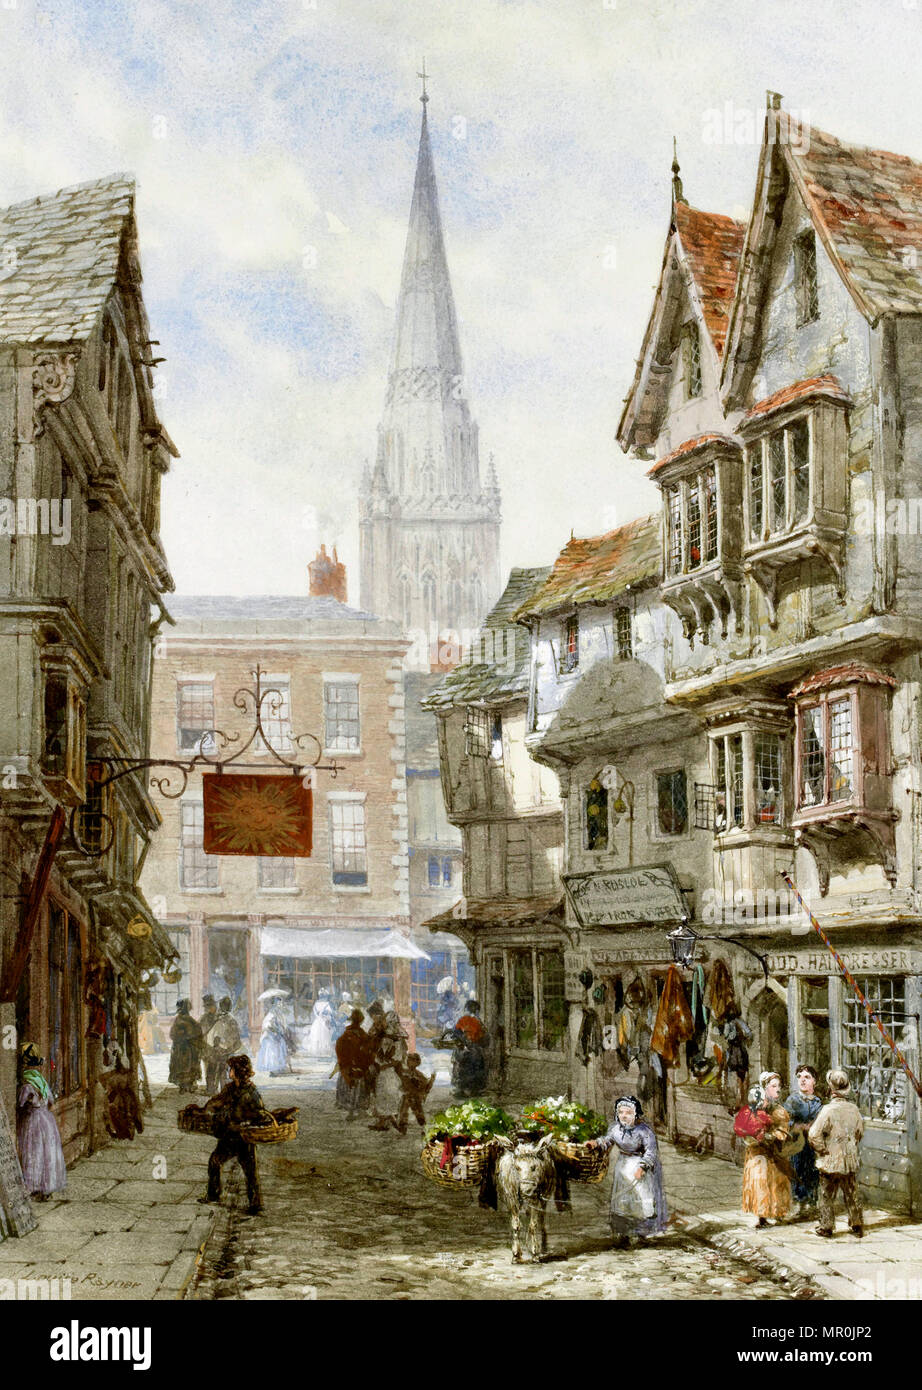 Minster Street, Salisbury. Signed Louise Rayner. Watercolour and gouache, 1924 - Stock Image